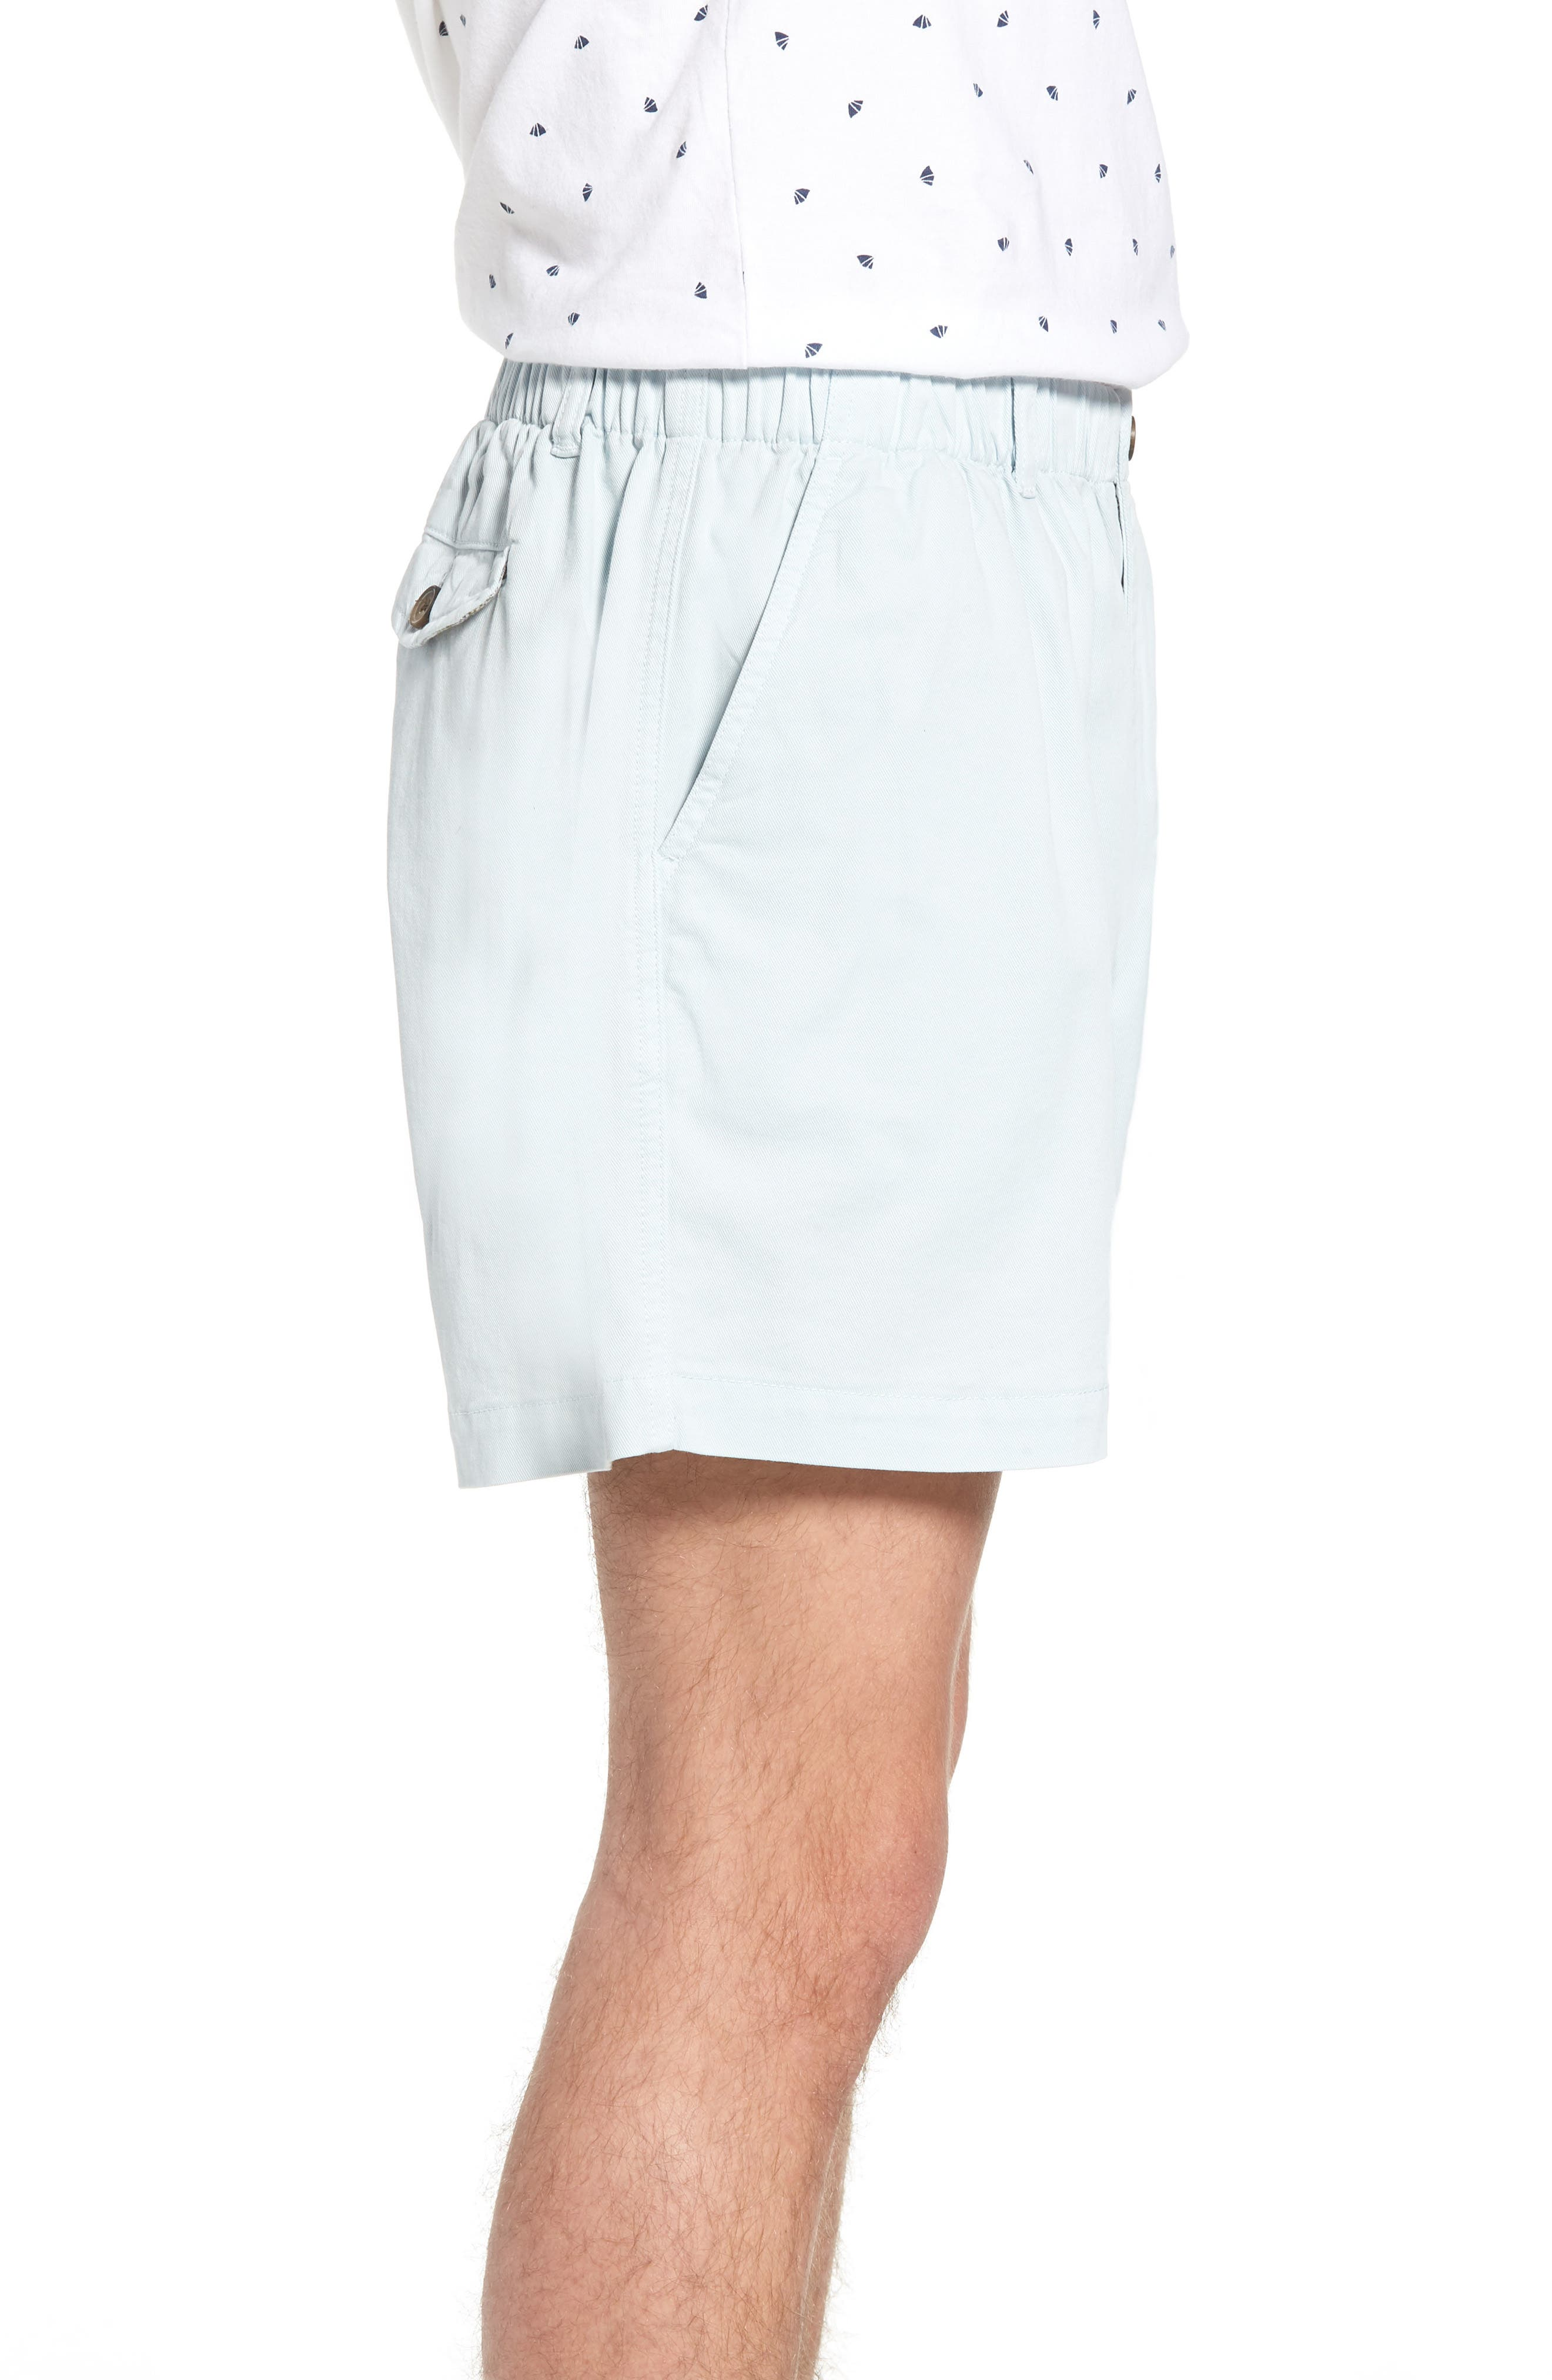 Snappers Elastic Waist 5.5 Inch Stretch Shorts,                             Alternate thumbnail 3, color,                             Sky